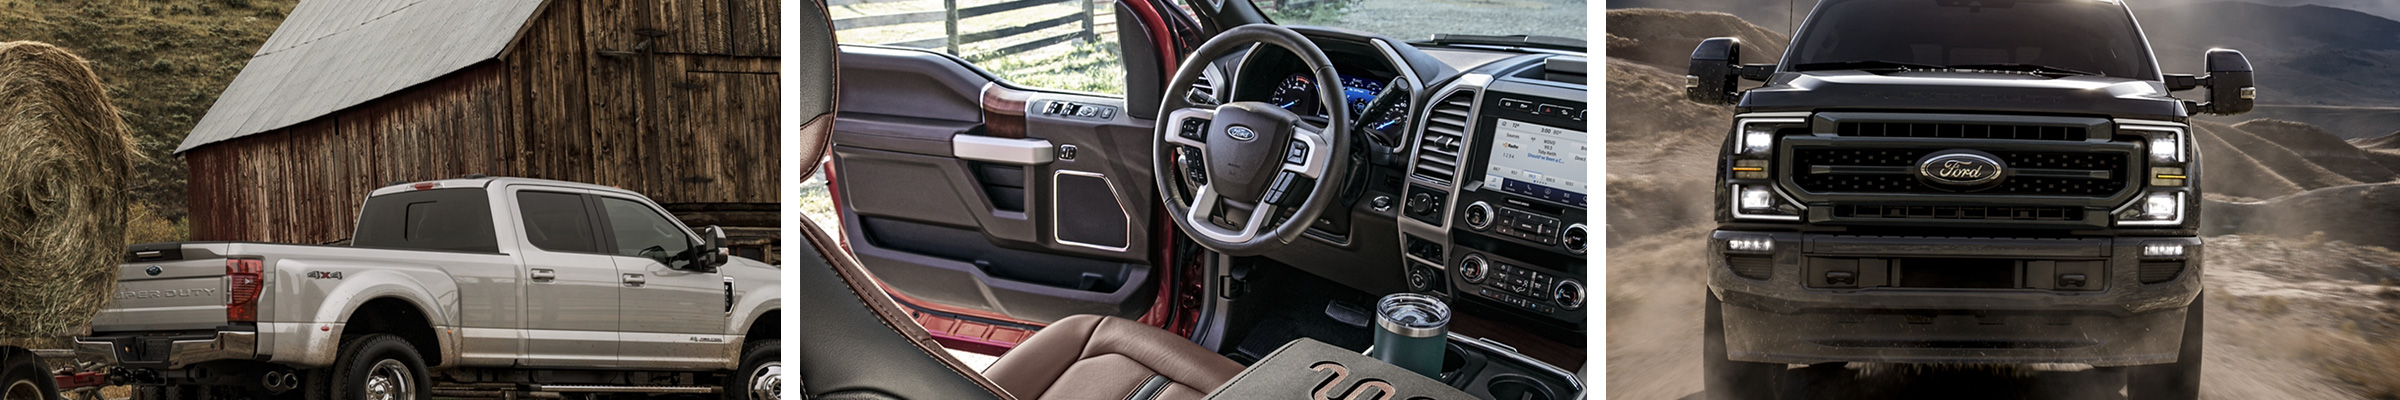 2020 Ford Super Duty For Sale | Middletown, OH